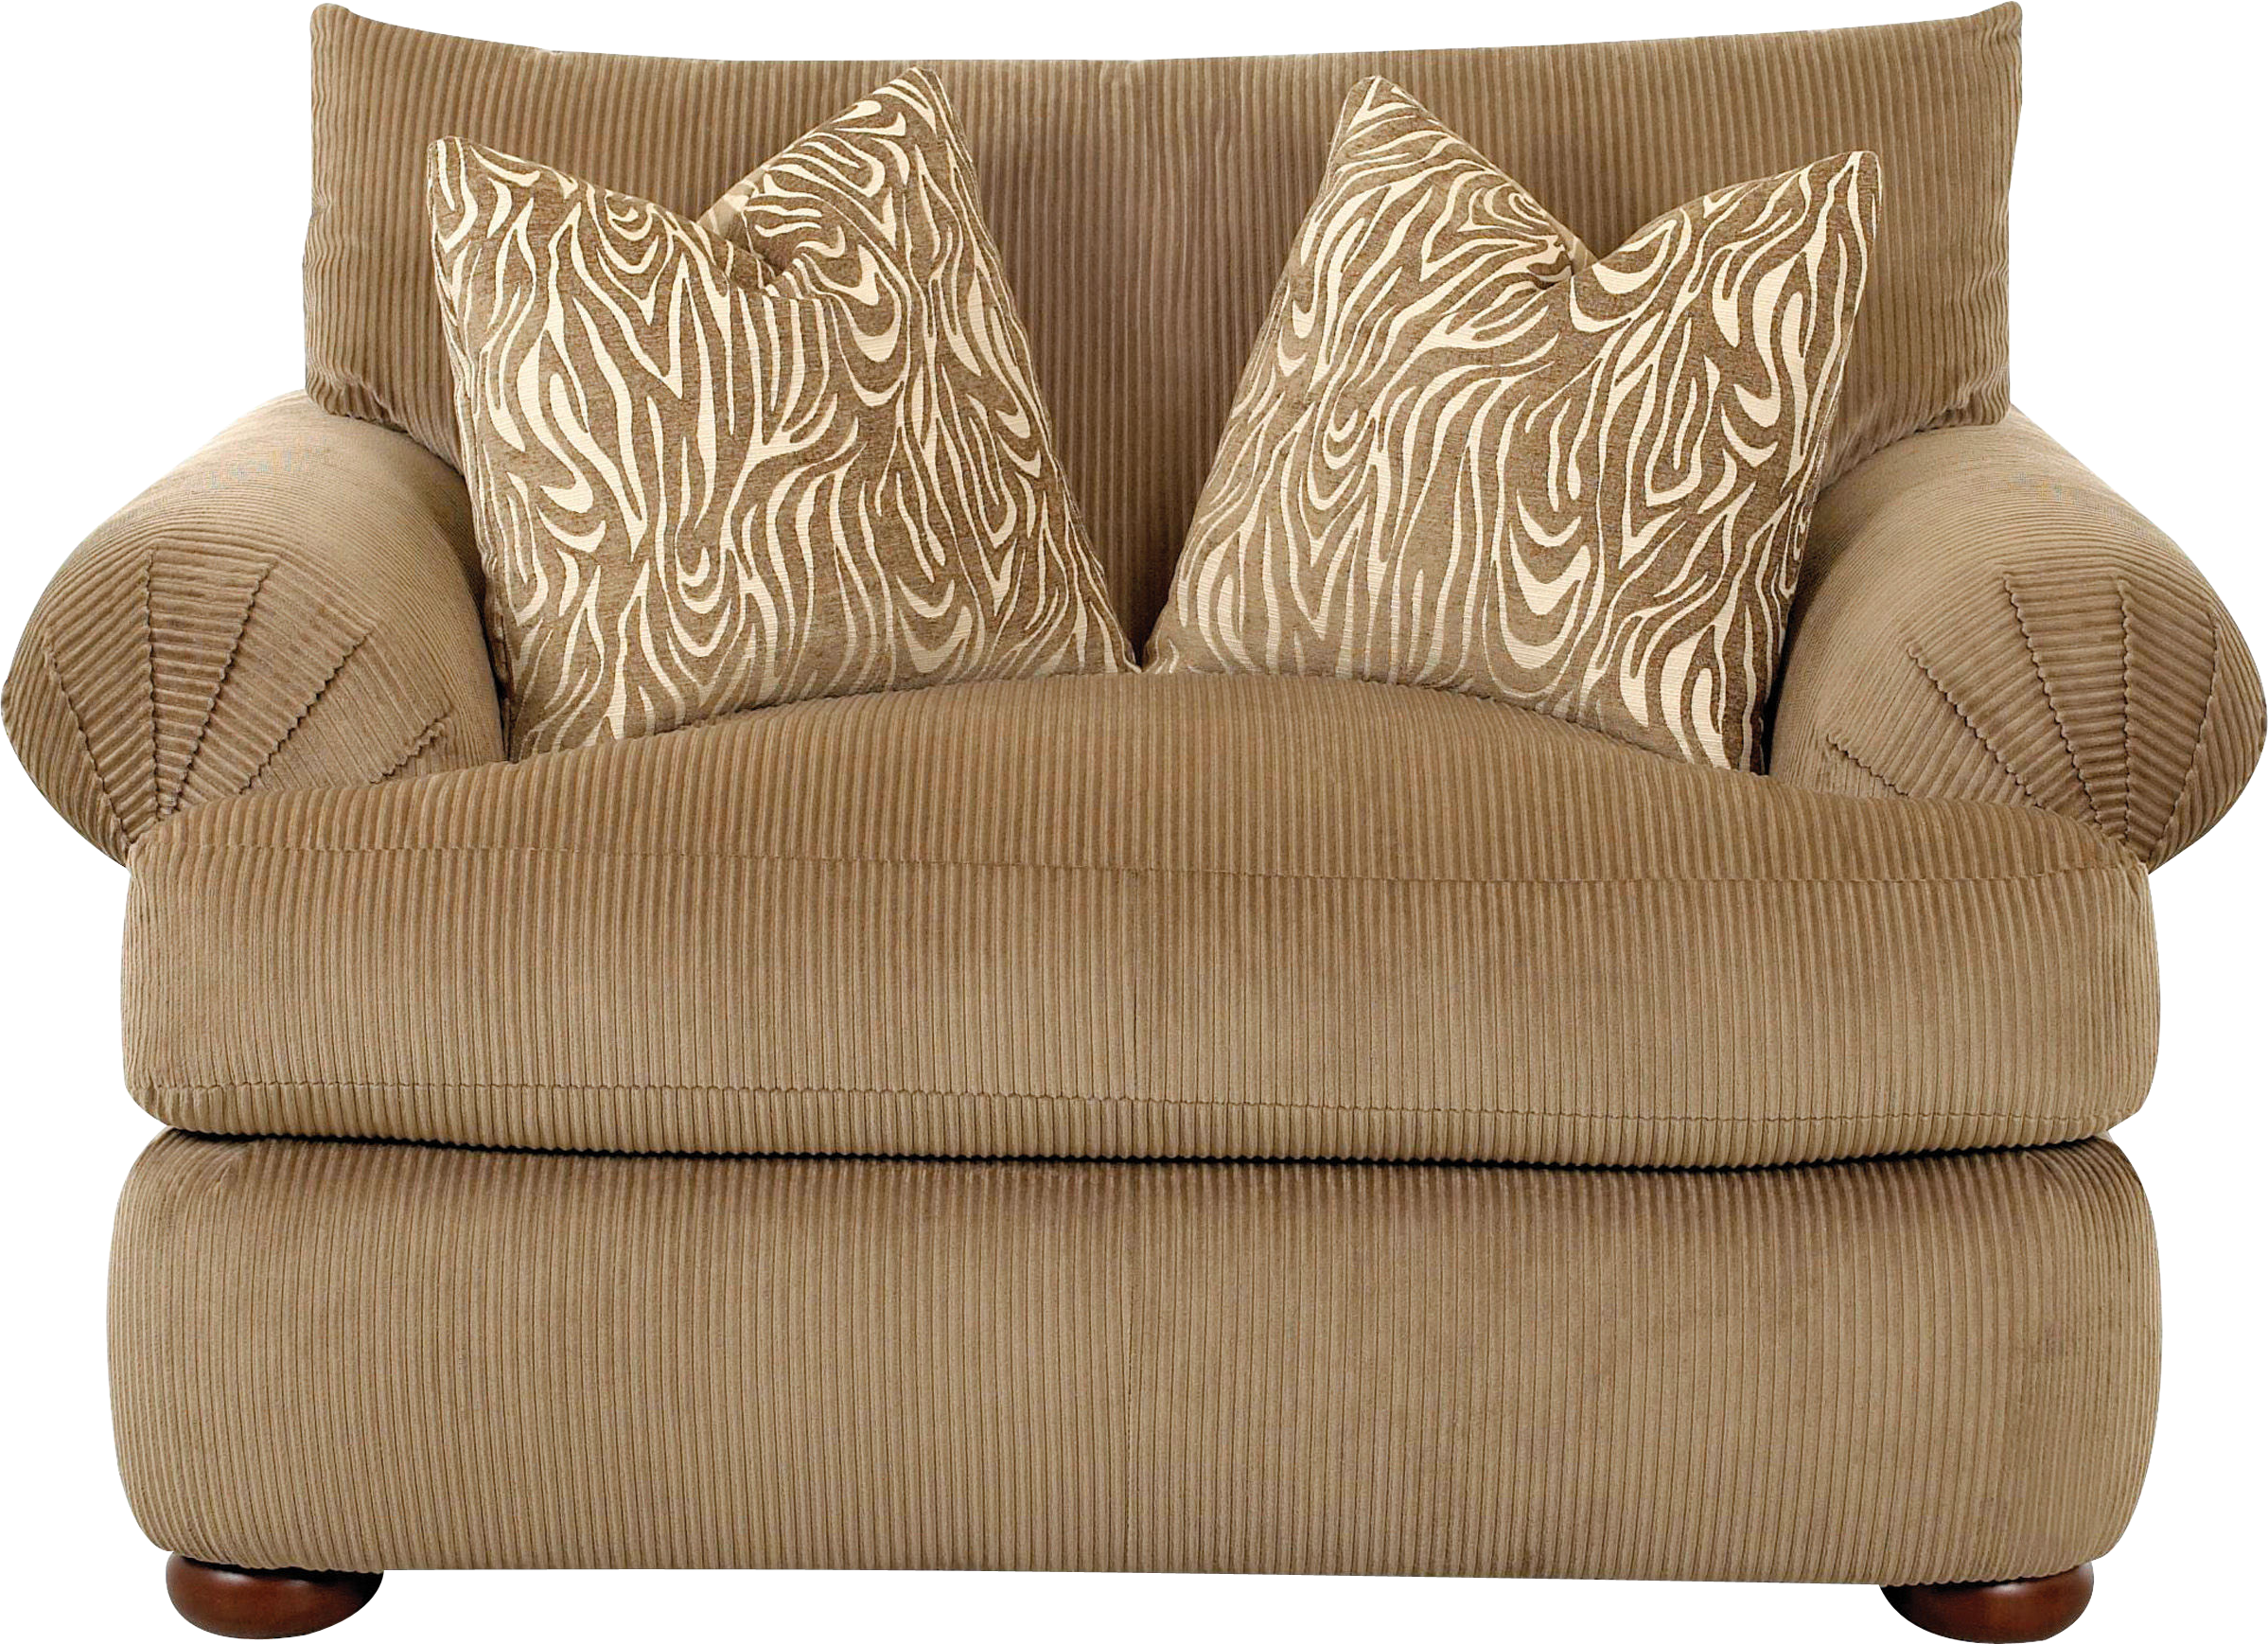 Couch Top View Transparent Png Clipart Free Download Ya Webdesign